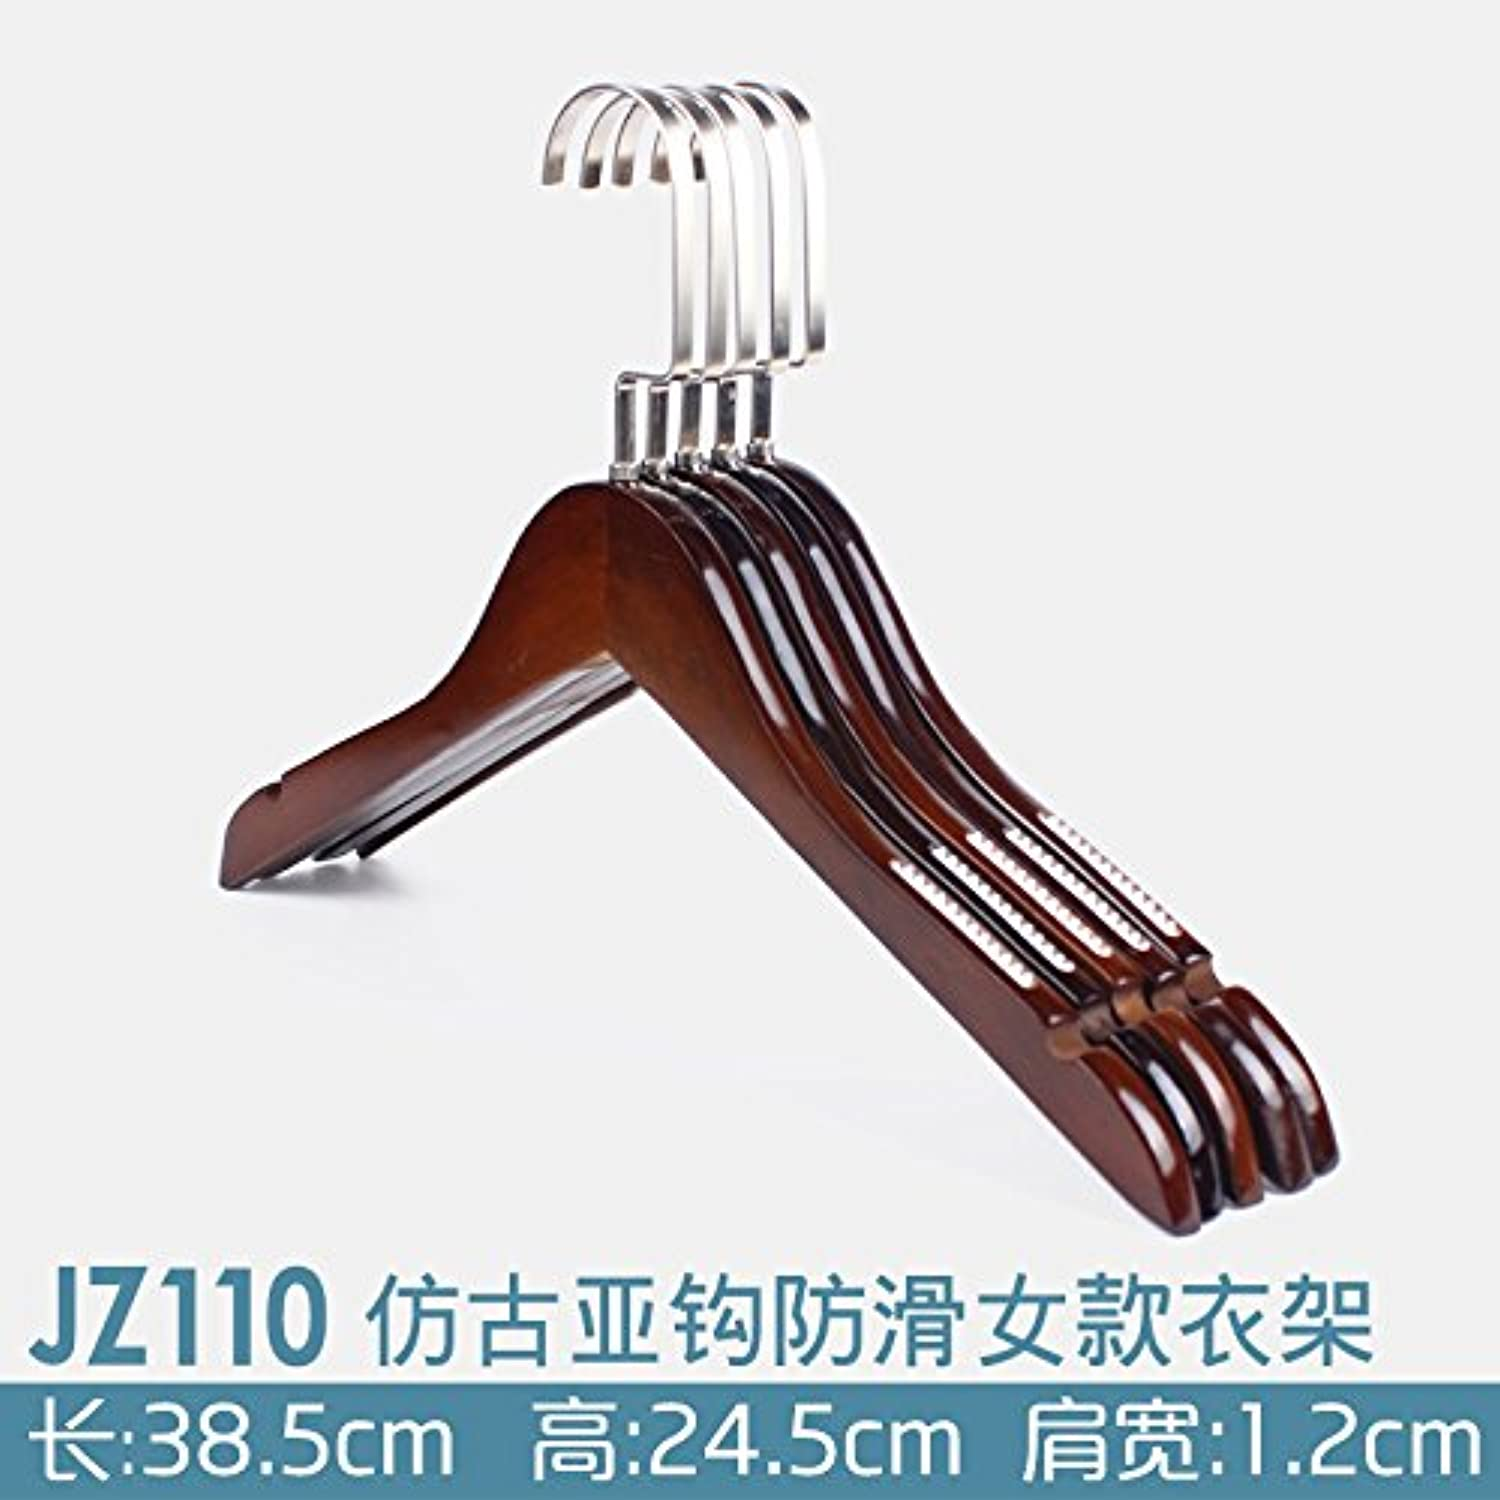 U-emember Home Suits Non-Slip Wooden Coat Hangers Wooden Poles Adult Clothing And Non-Marking Solid Wood Hangers ,100,Jz110- Coat Hanger With Anti-Slip The Hooks 6601